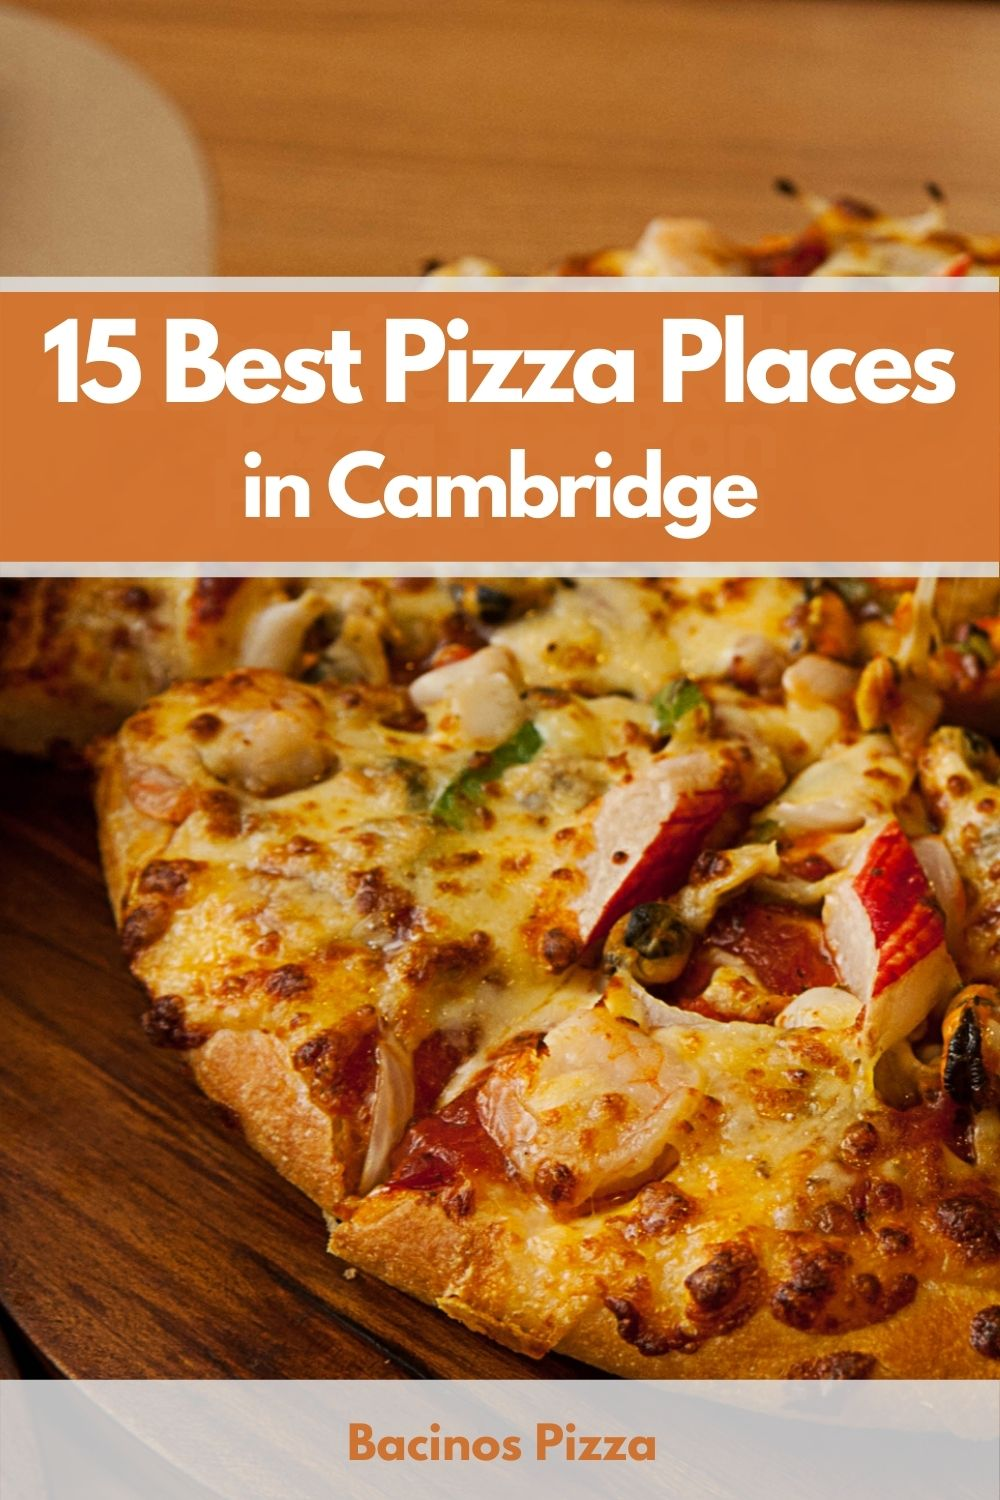 15 Best Pizza Places in Cambridge pin